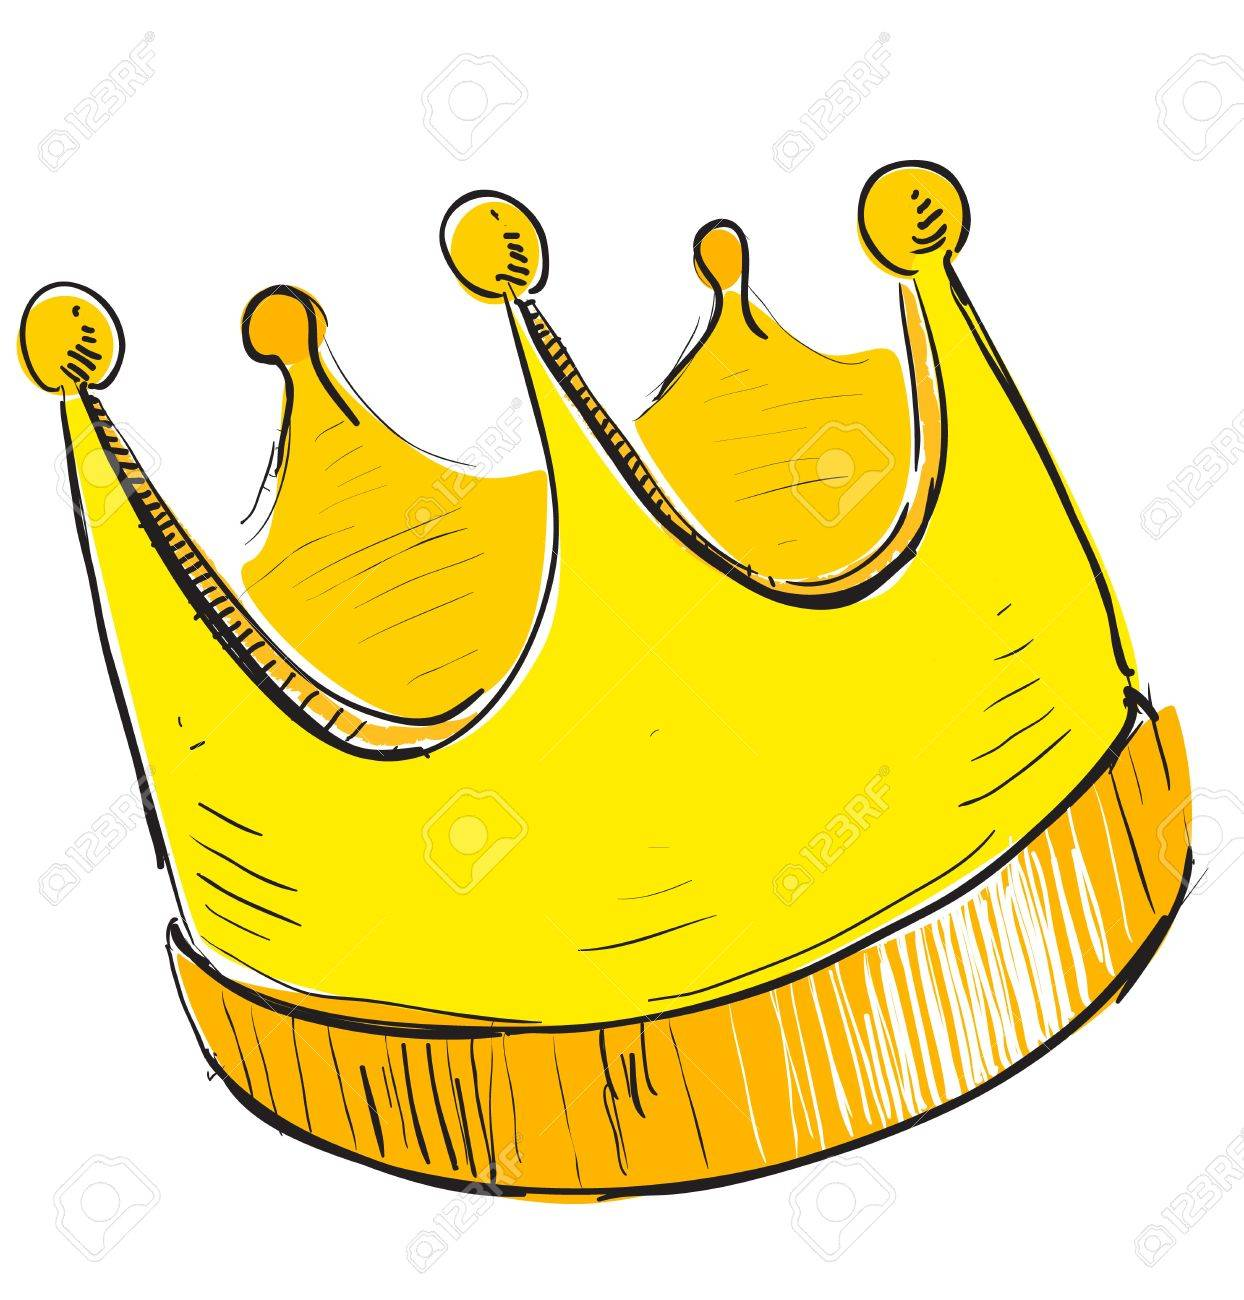 Cartoon Crown Simple / They are widely known being worn by kings or queens crowns are often made of gold and precious gems.